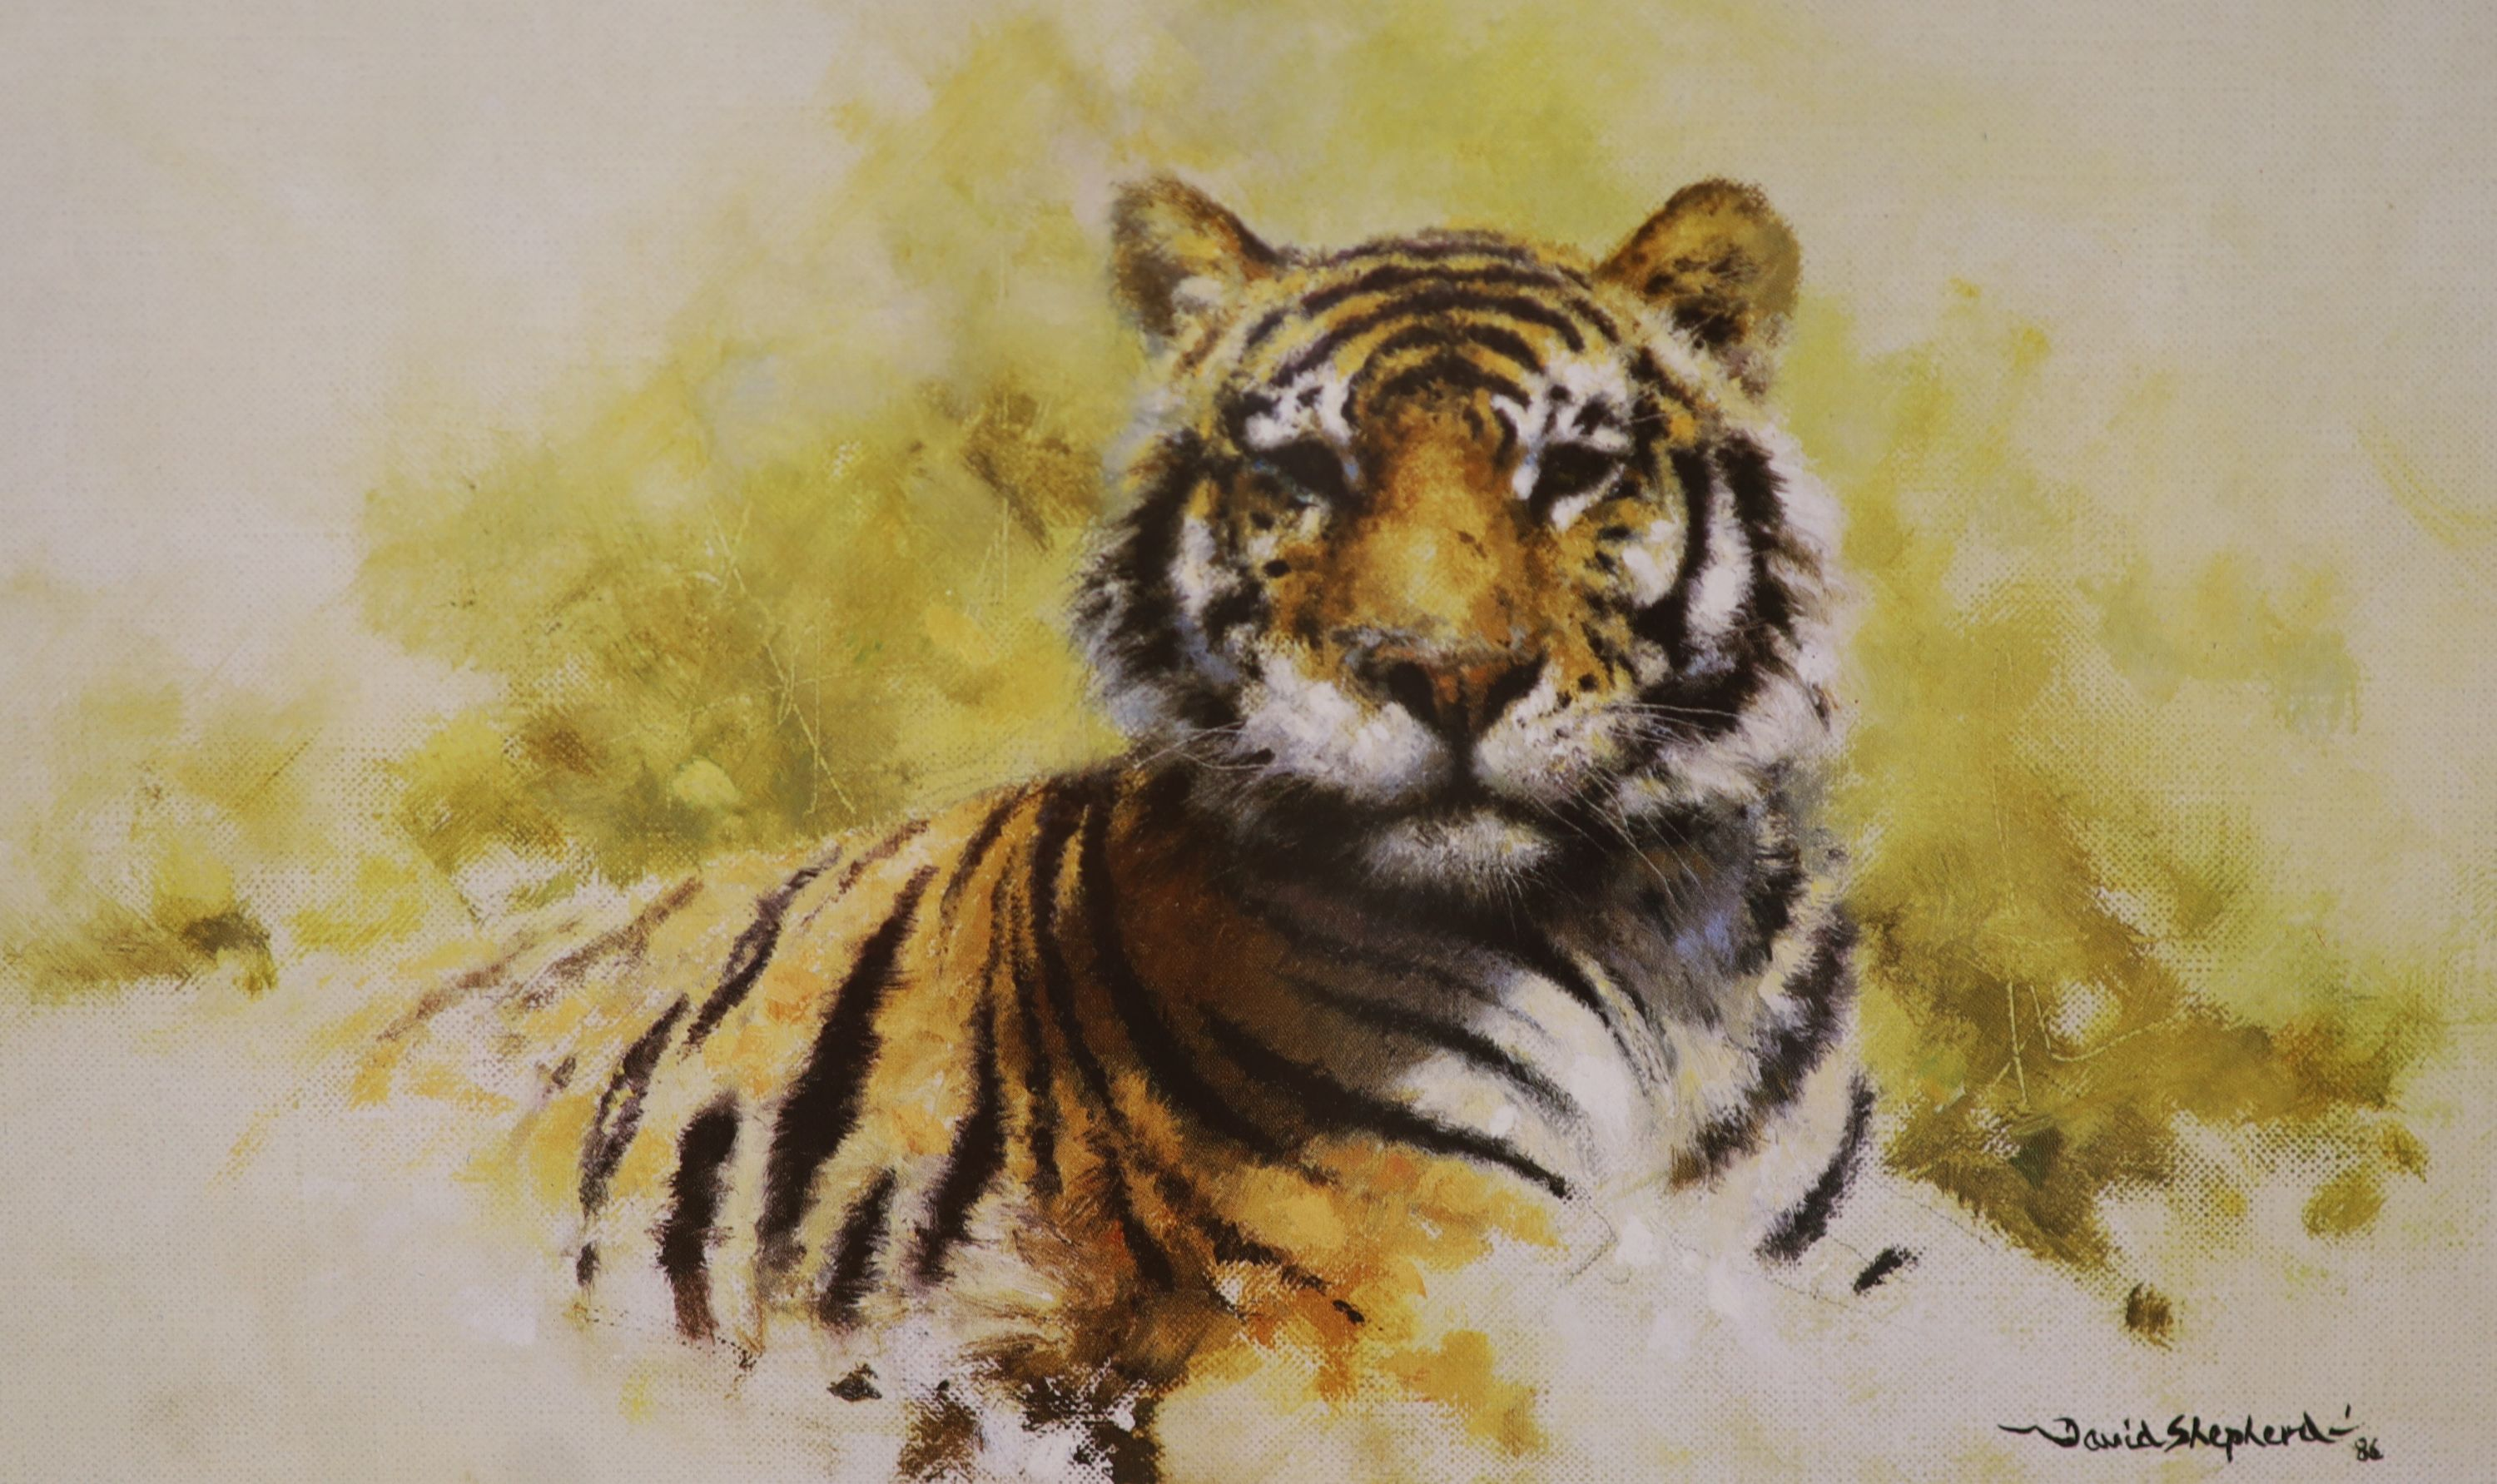 Three David Shepherd limited edition prints; Lion Sketch, Tiger Sketch and Rhino Reverie, signed - Image 2 of 4